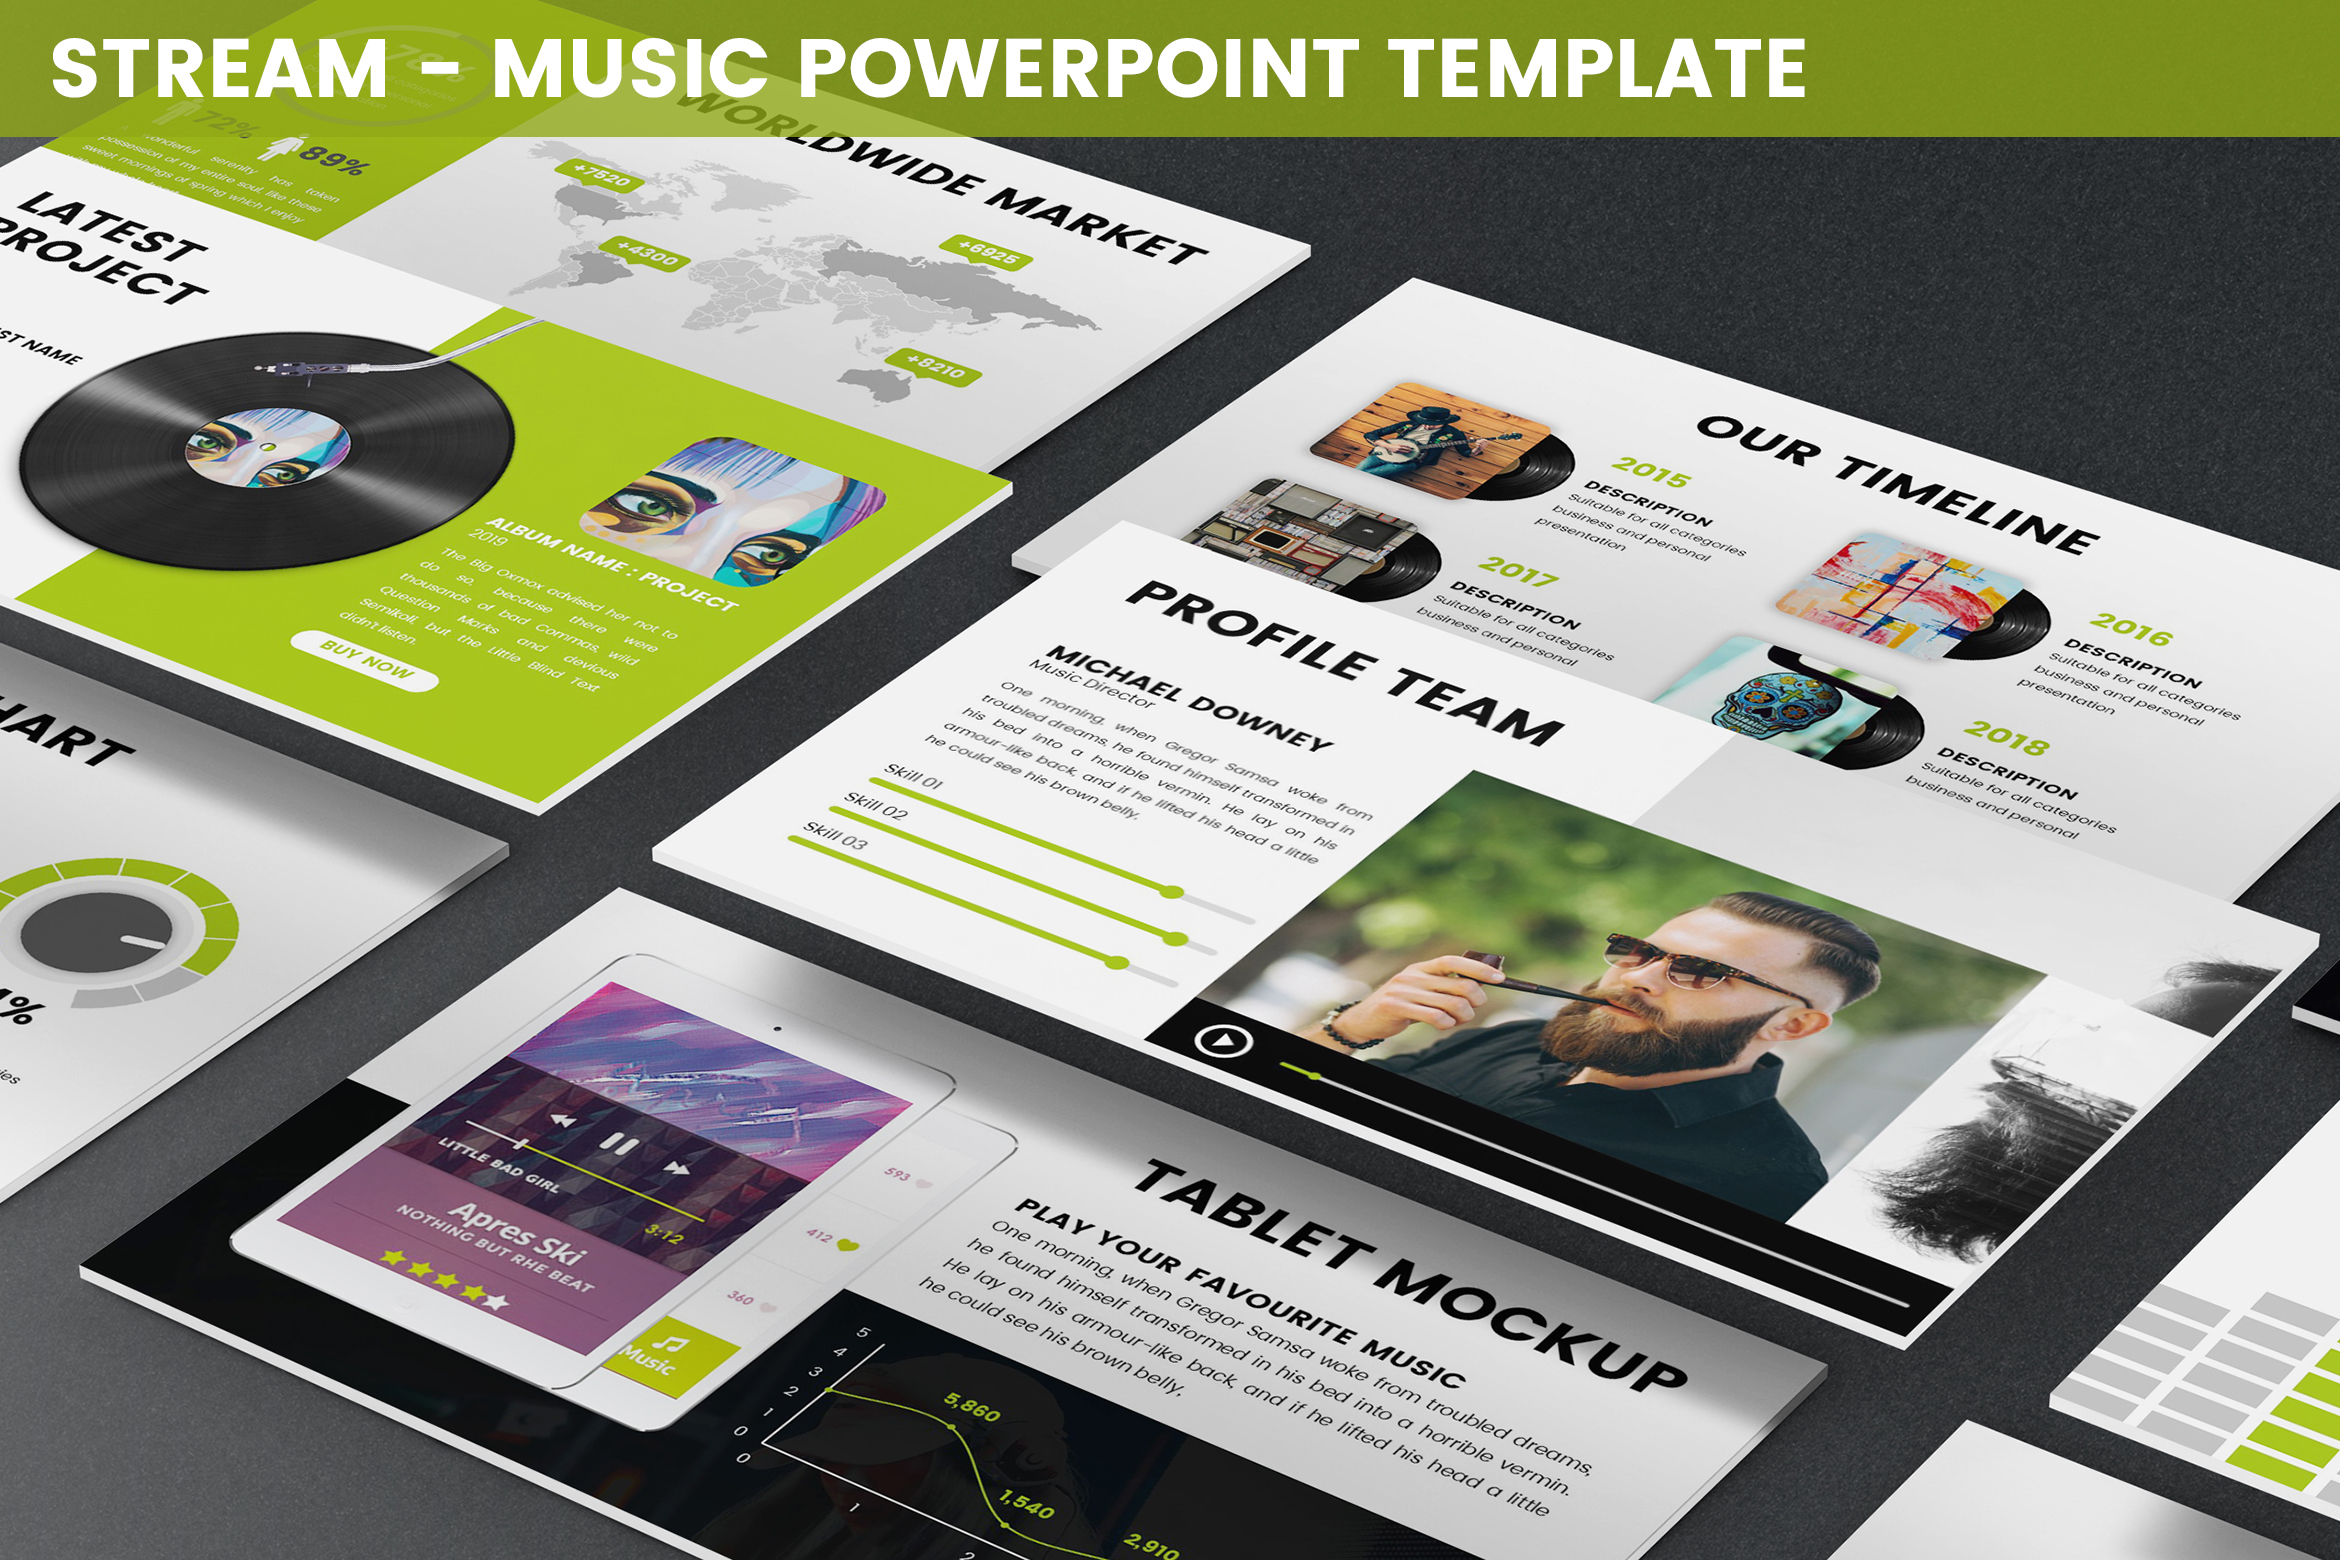 Stream - Music Powerpoint Template example image 1